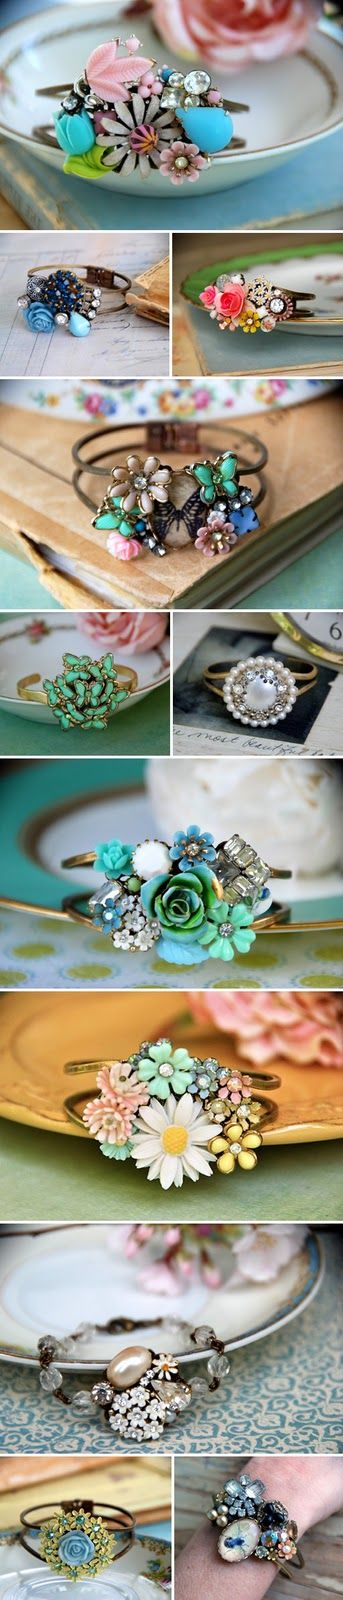 vintage jewelry, repurposed